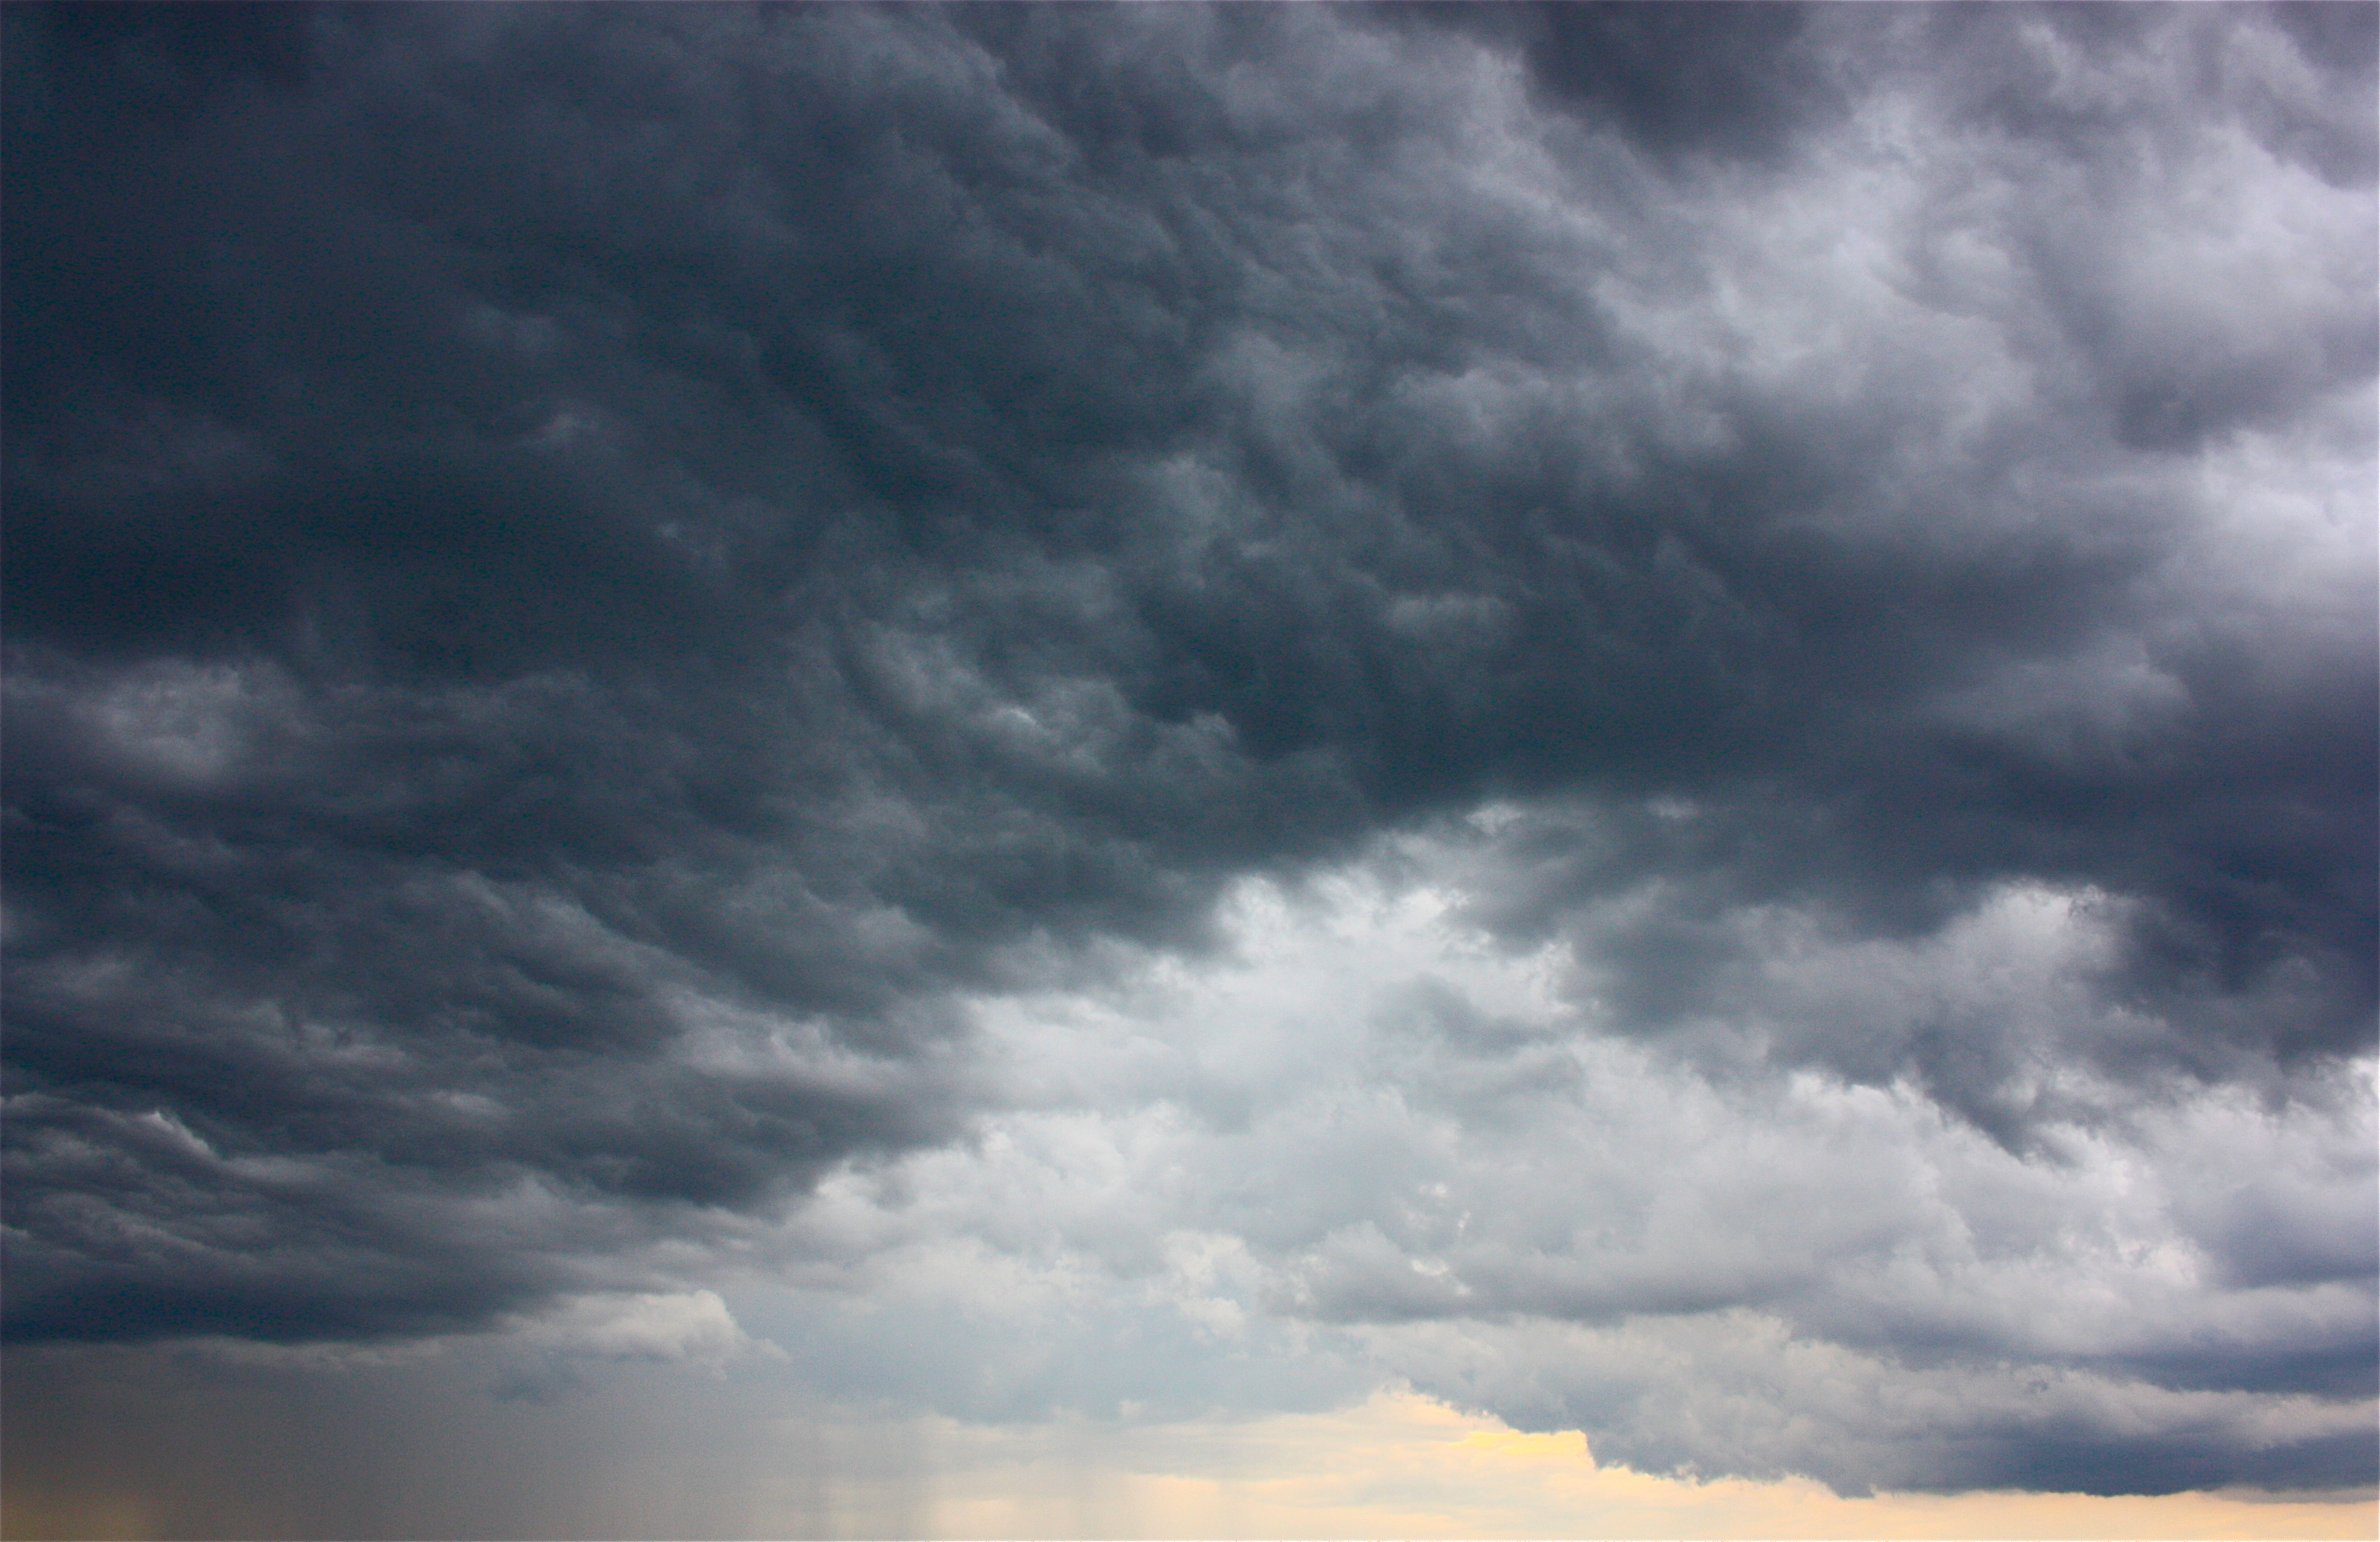 Lake Hartwell Storm Clouds 2